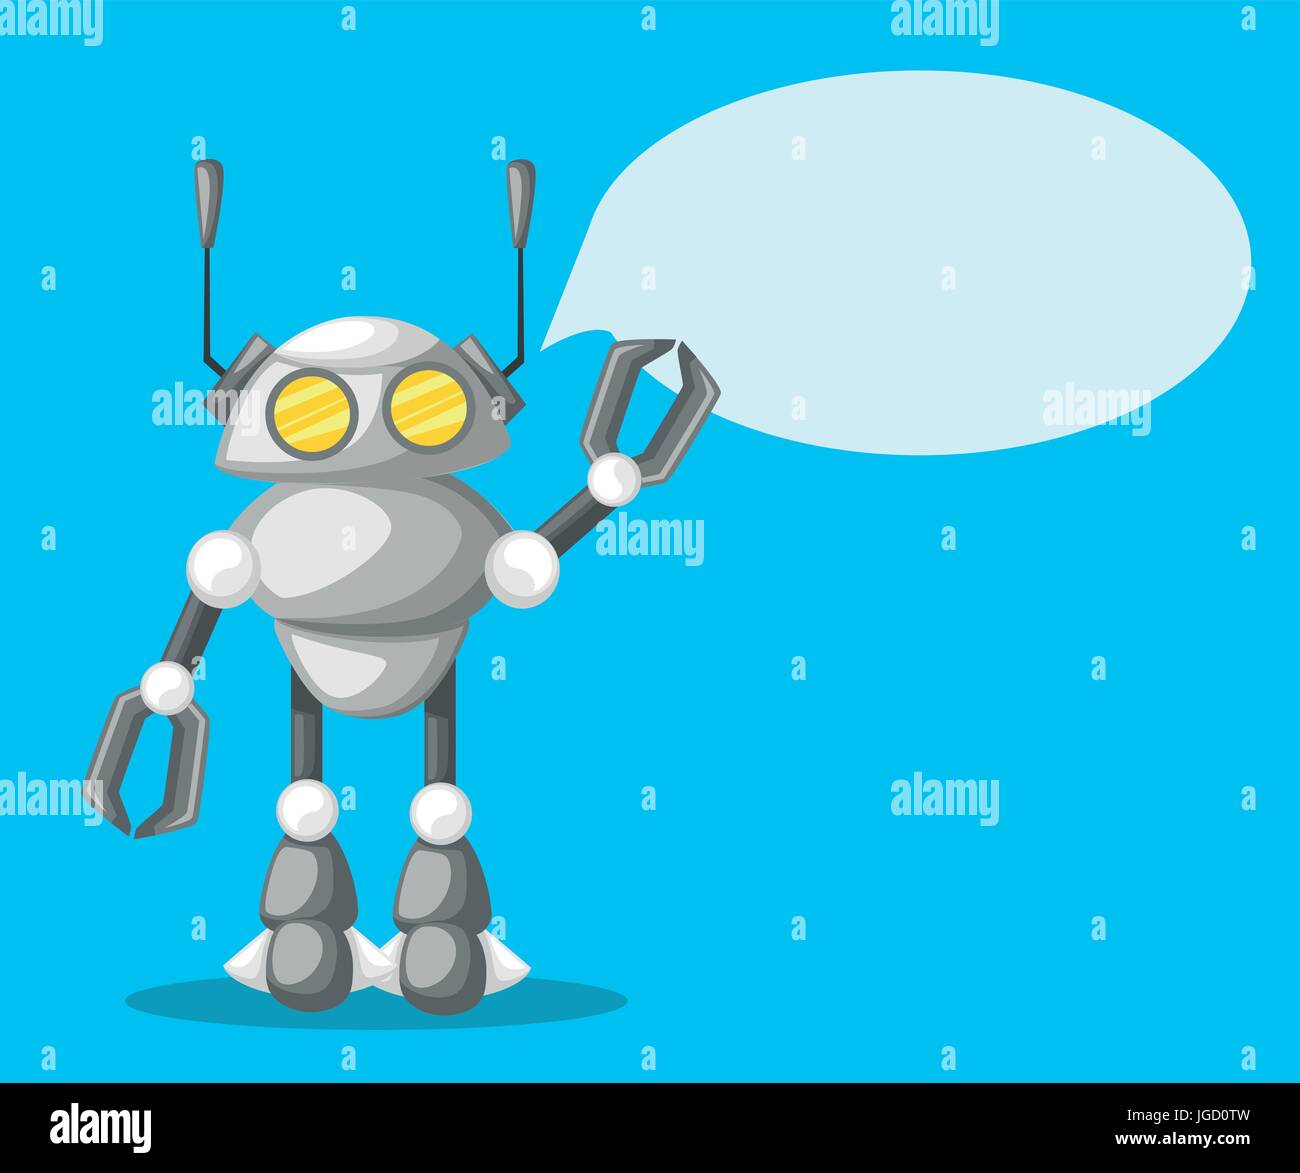 Friendly Android Robot Character With Two Antennas Cartoon